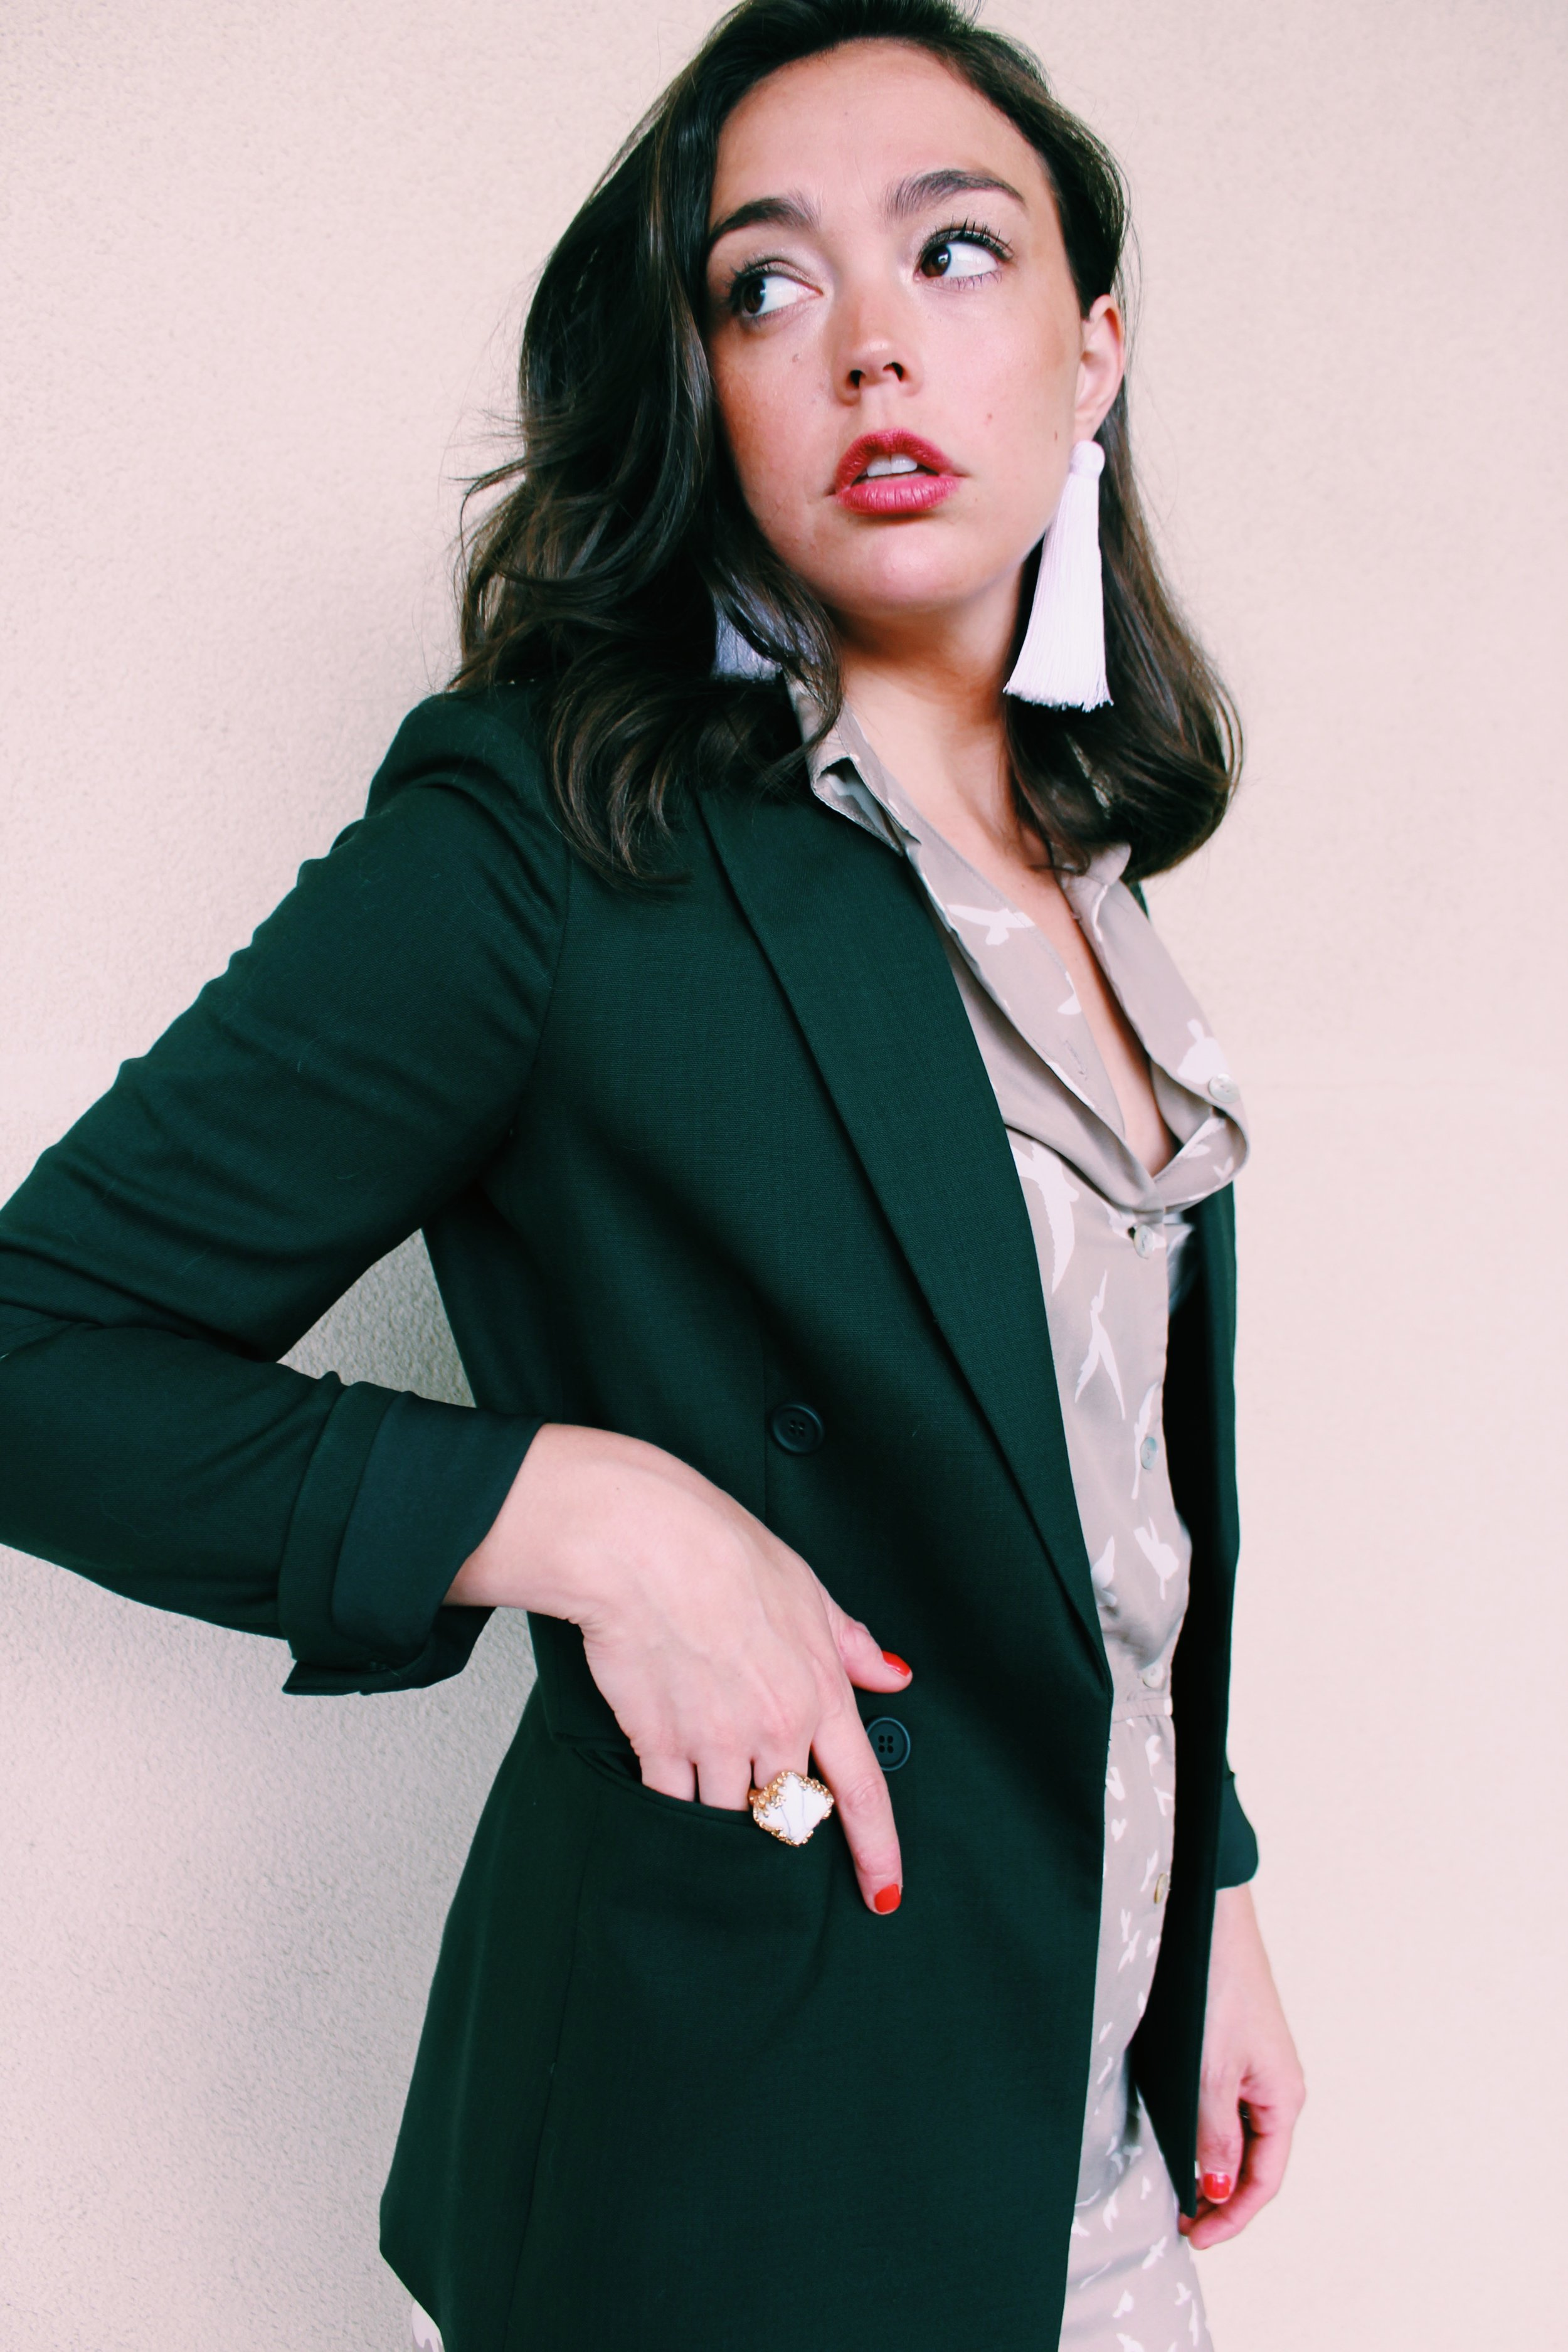 Raquel Greer Gordian shares four easy ways to pair your classic blazer with what's in your closet.